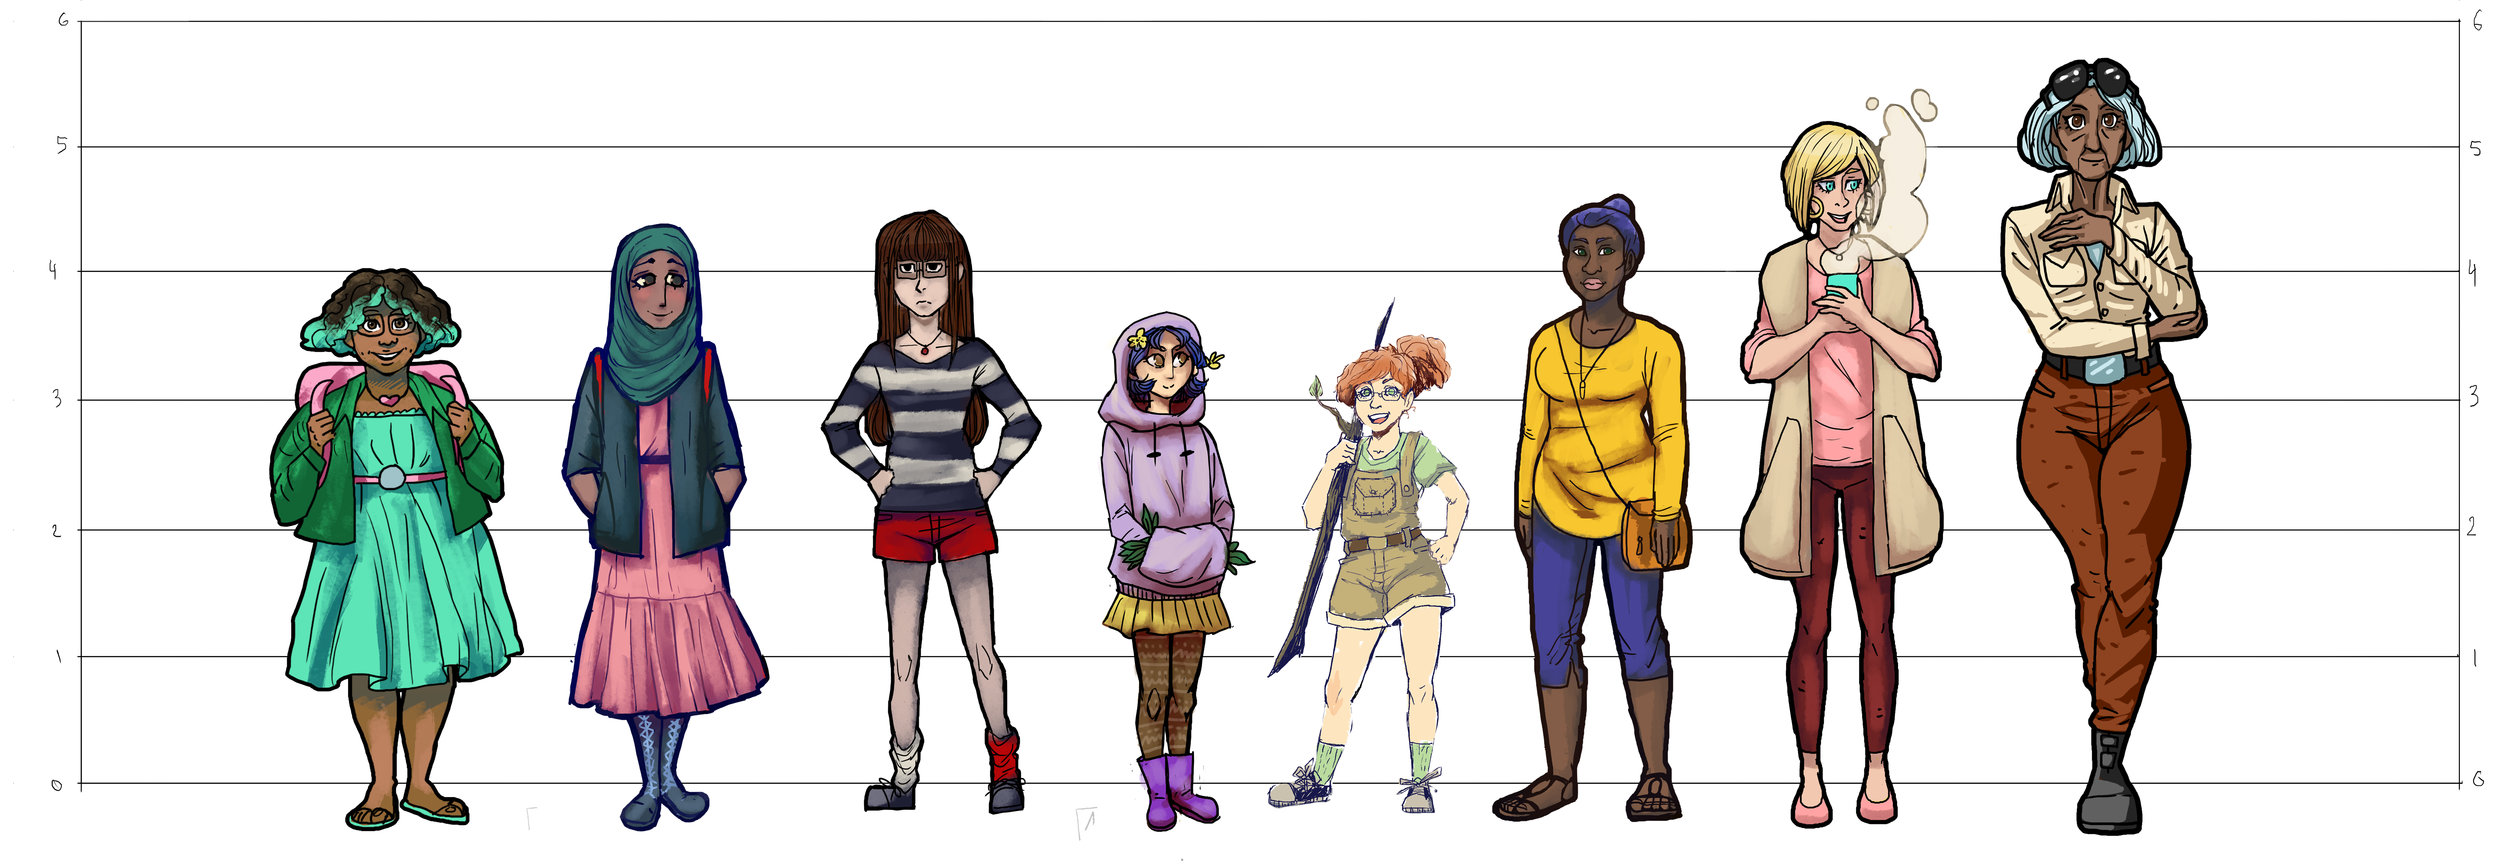 CharacterConcepts_LineUp_Females_v3_JessicaGreving.jpg